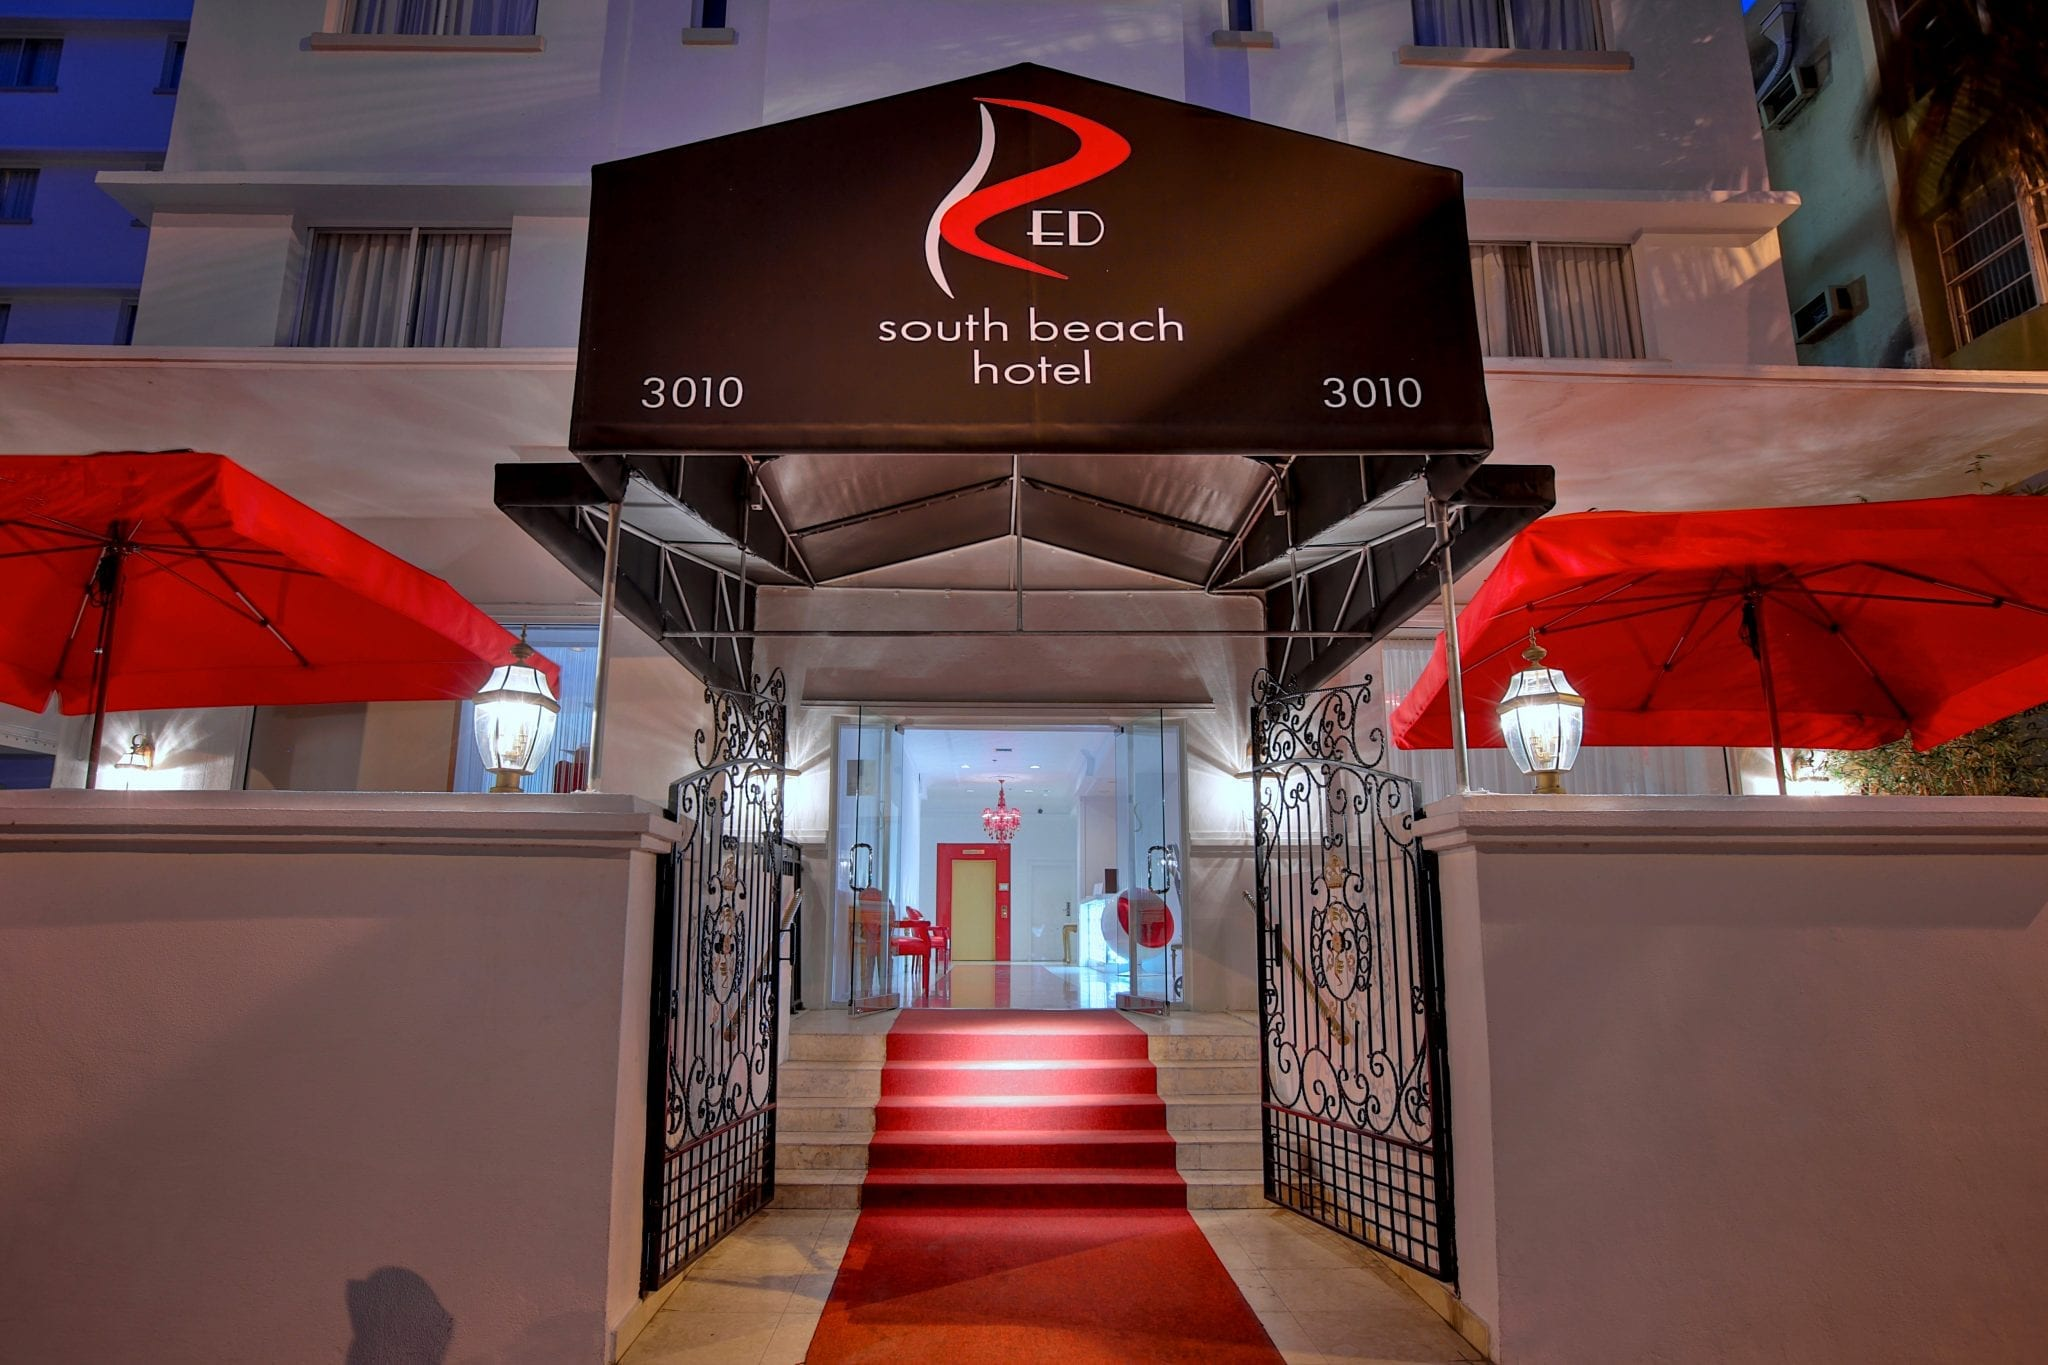 Front-Entrance to Red South Beach Hotel in Miami Beach, USA